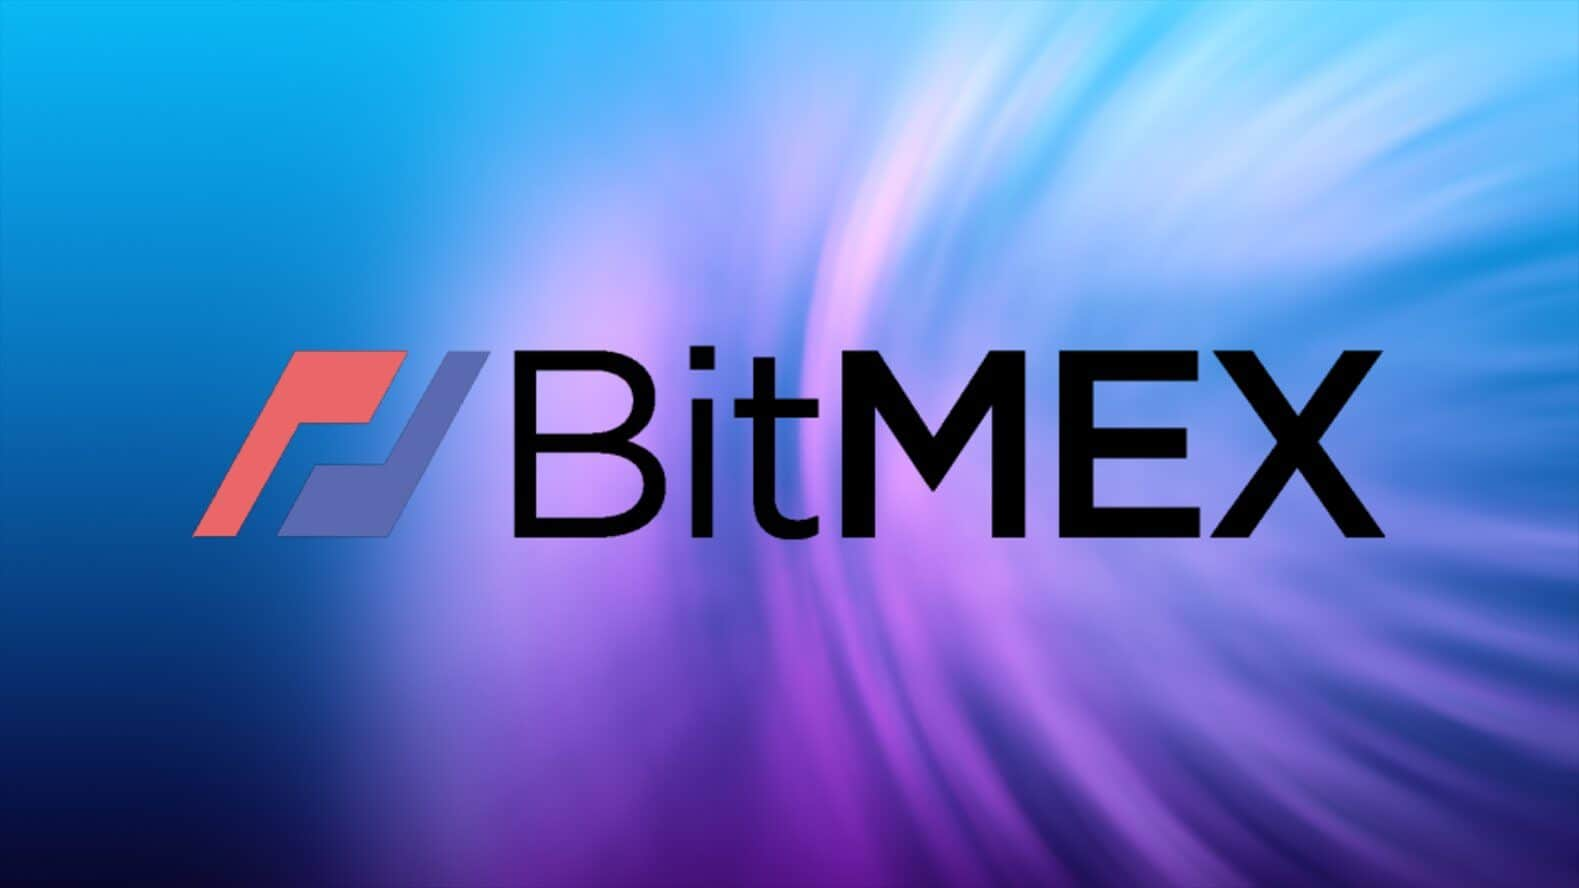 BitMEX Commits an Email Blunder, Potentially Compromises User Data